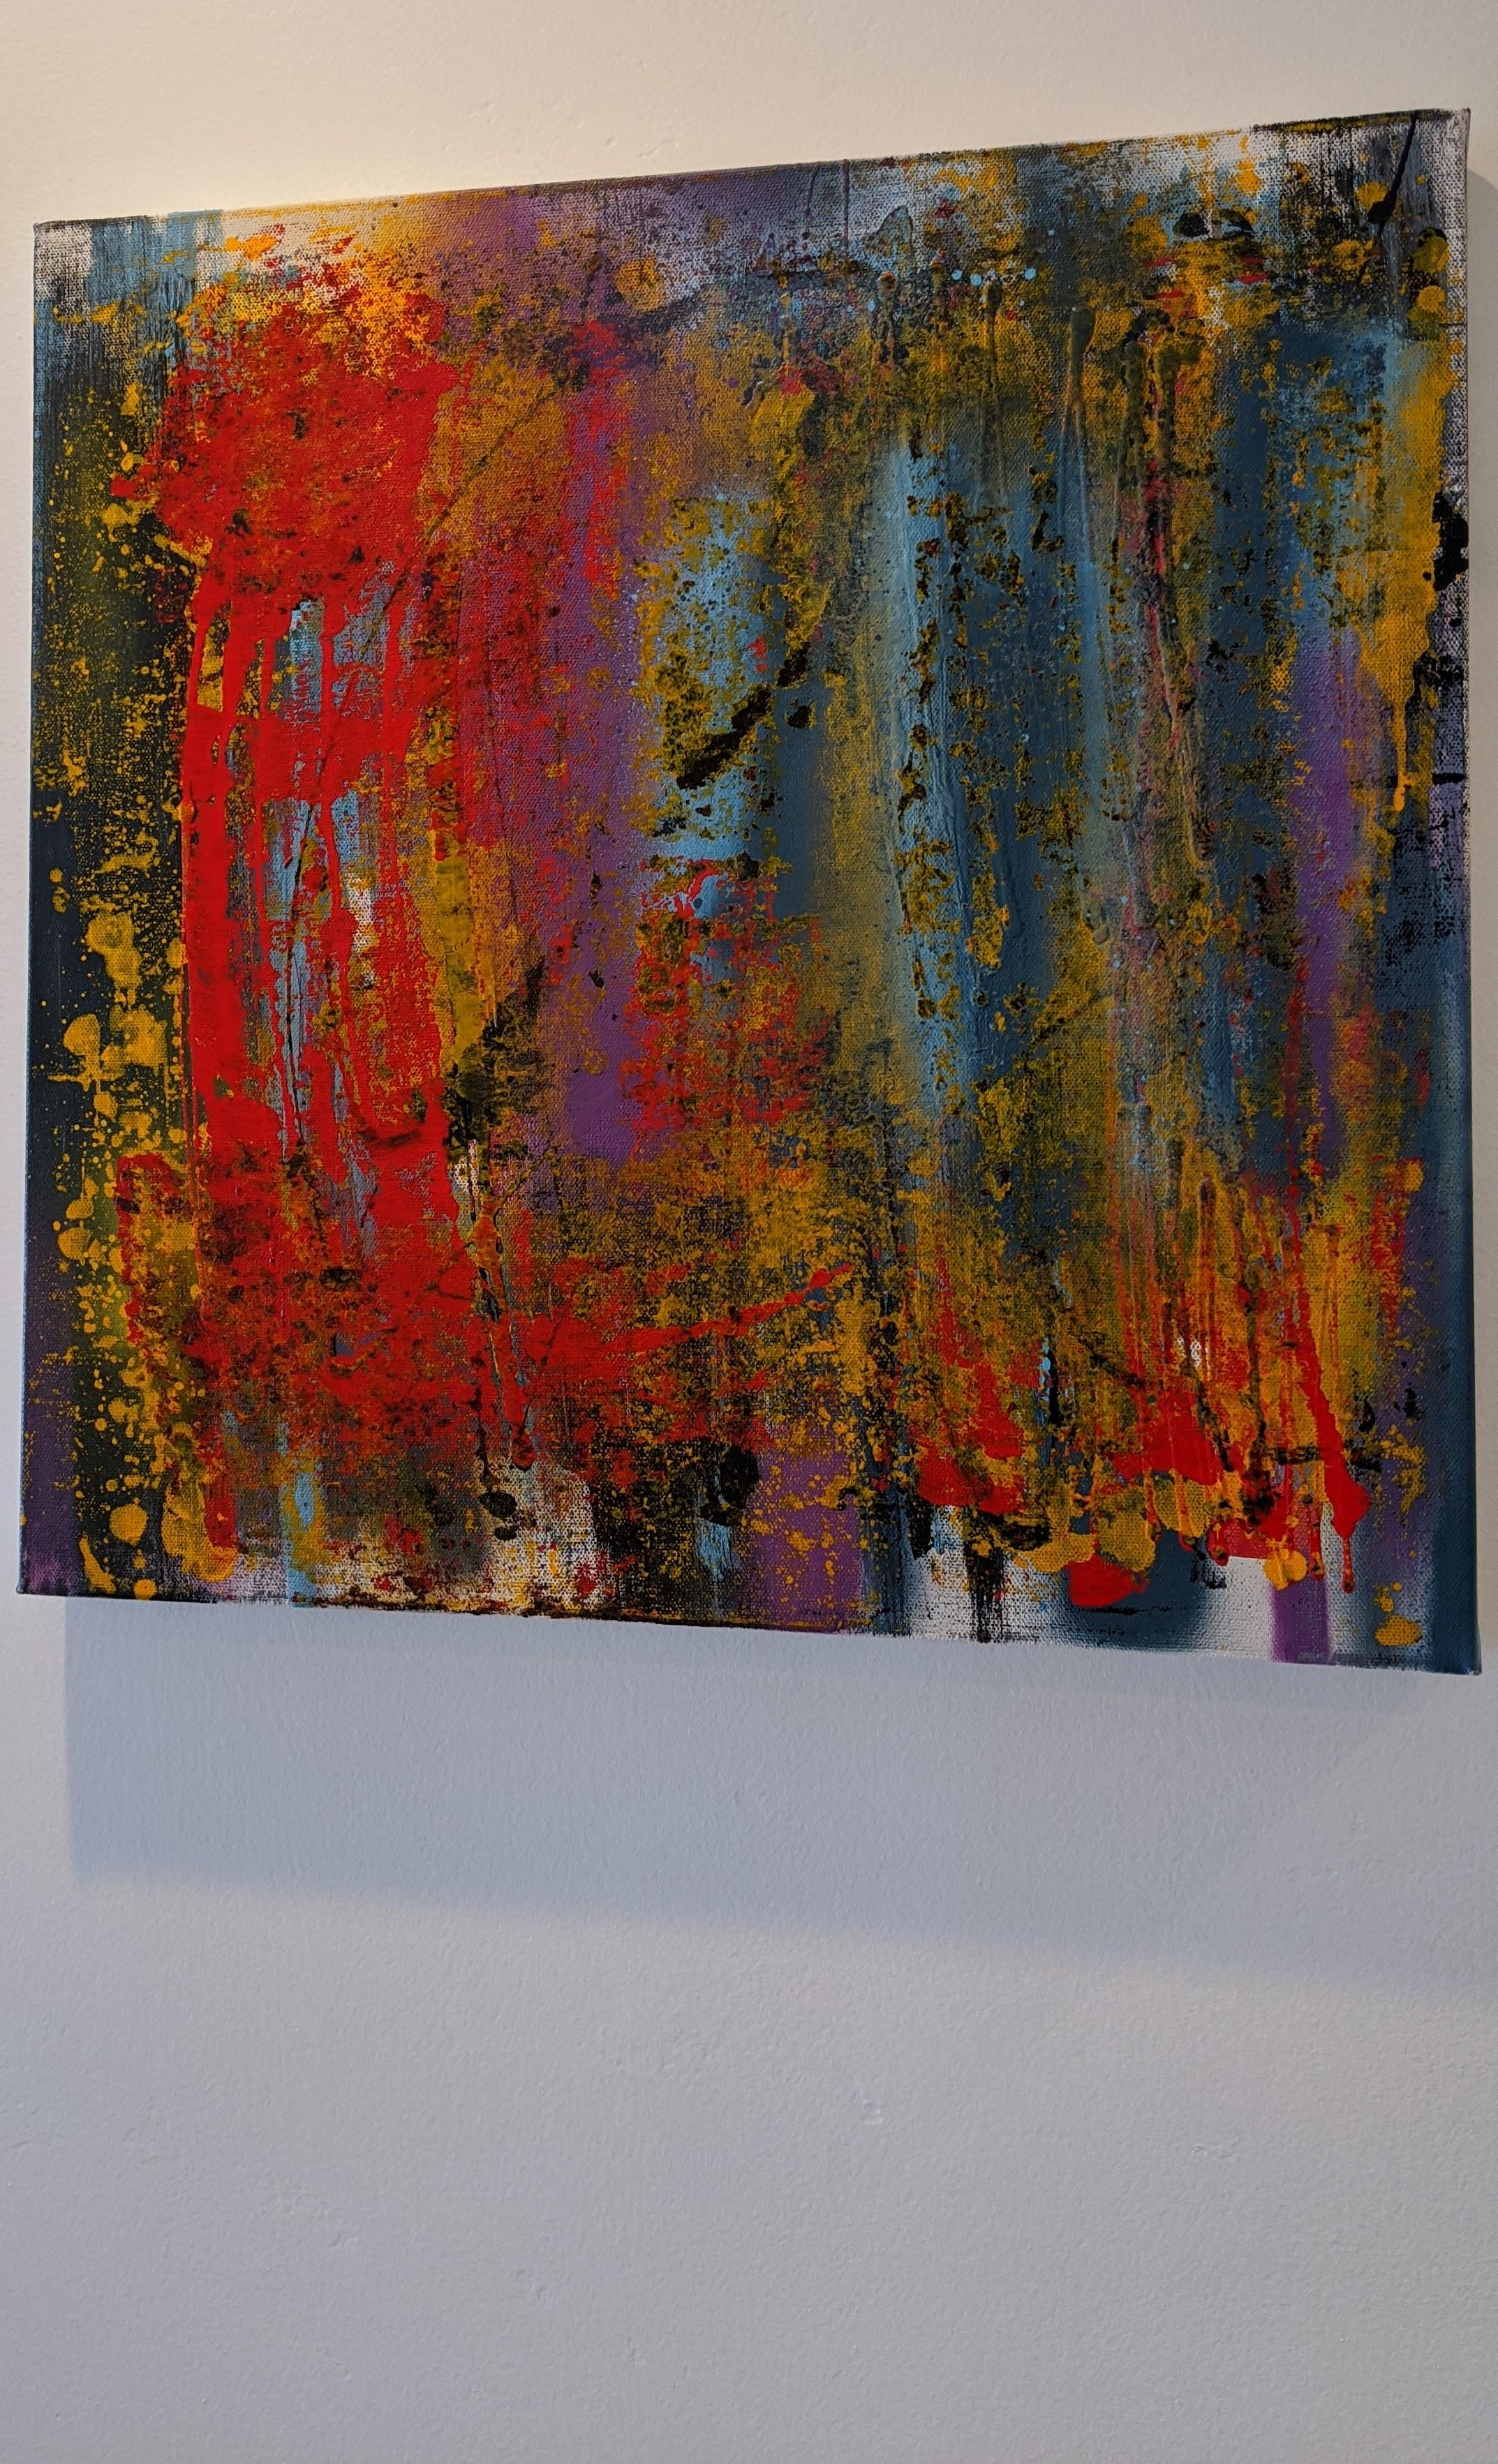 Abstract Painting, Gold, Red, Bold Colors, Mixed Media by Kaplan